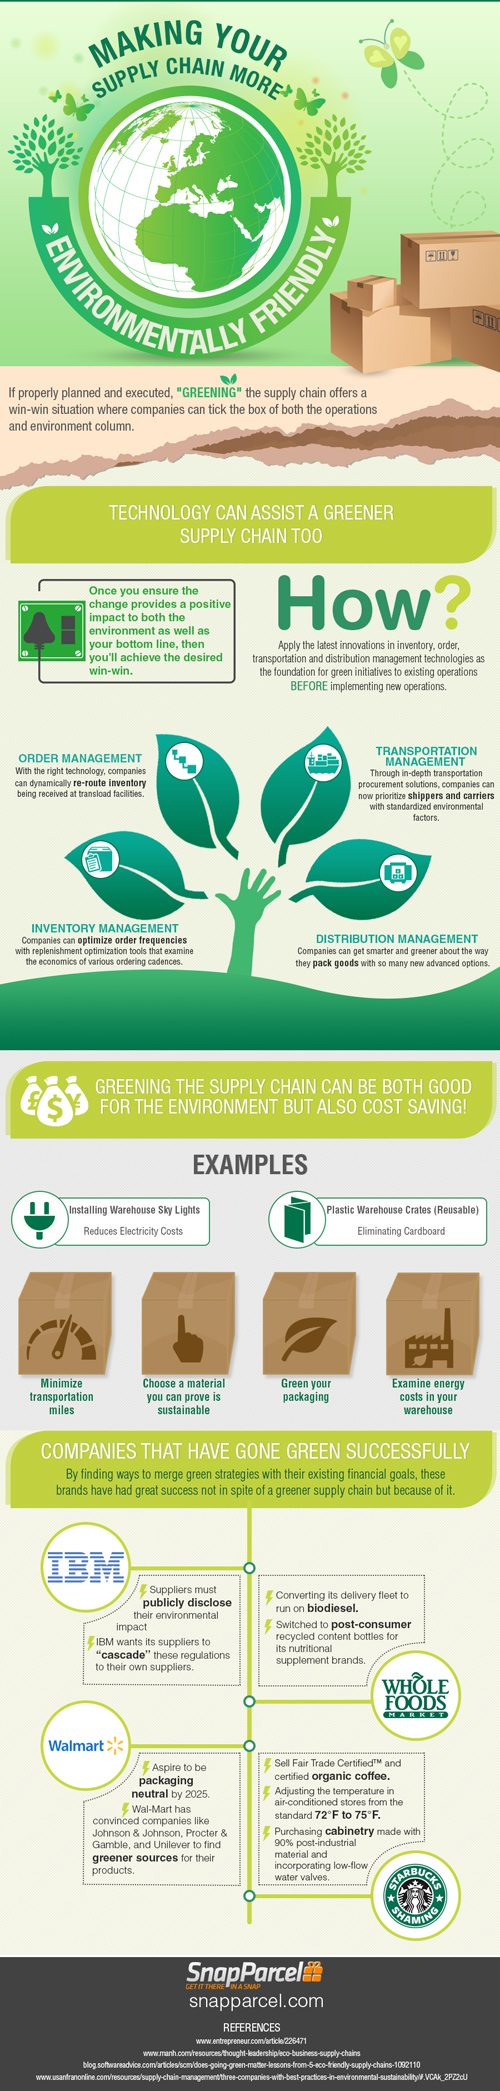 green sustainable supply chain Don't forget to green your packaging if you are not ready to green your entire supply chain, take a look at your product packaging as a place to start adding sustainability to your business model.